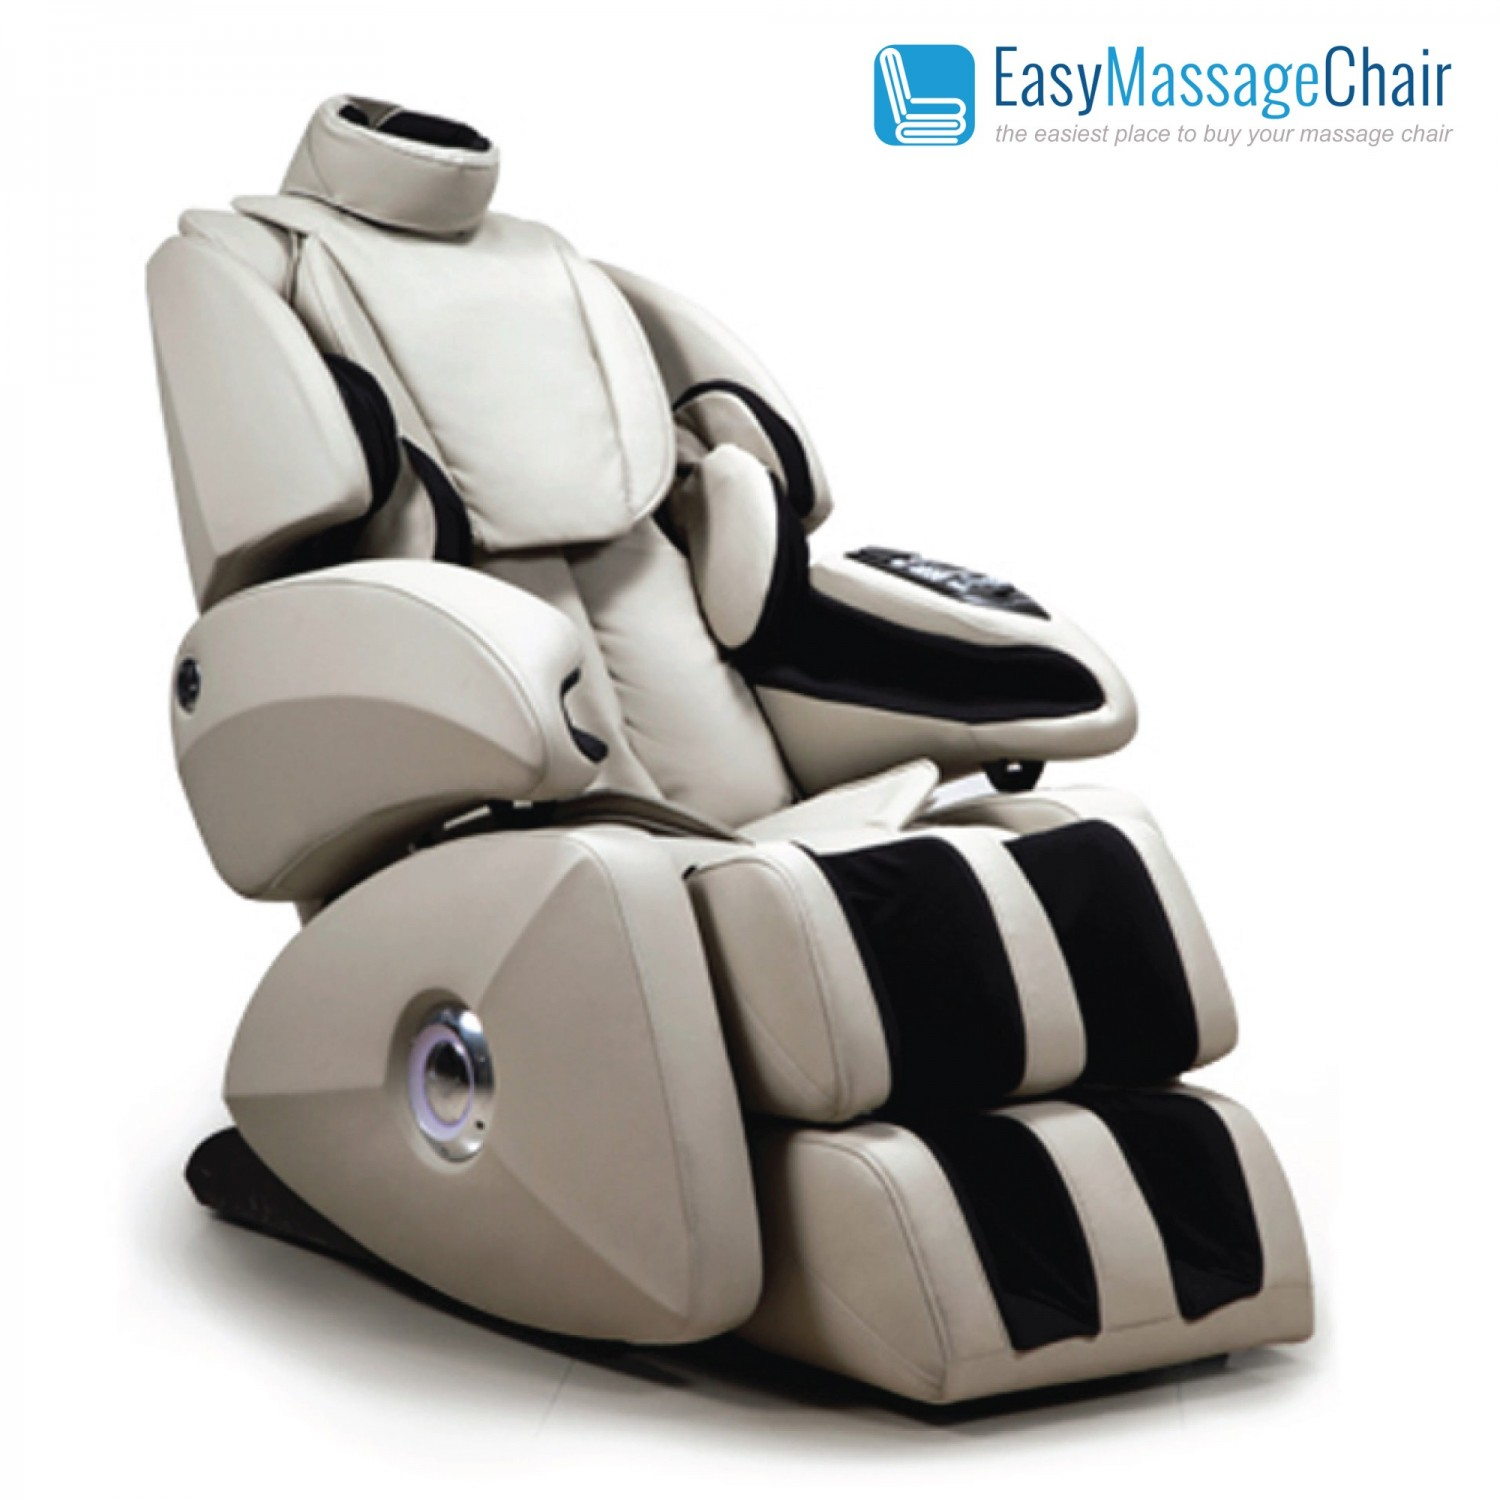 Osaki Massage Chair | Massage Chair Osaki 4000 | Osaki 7075r Massage Chair Review